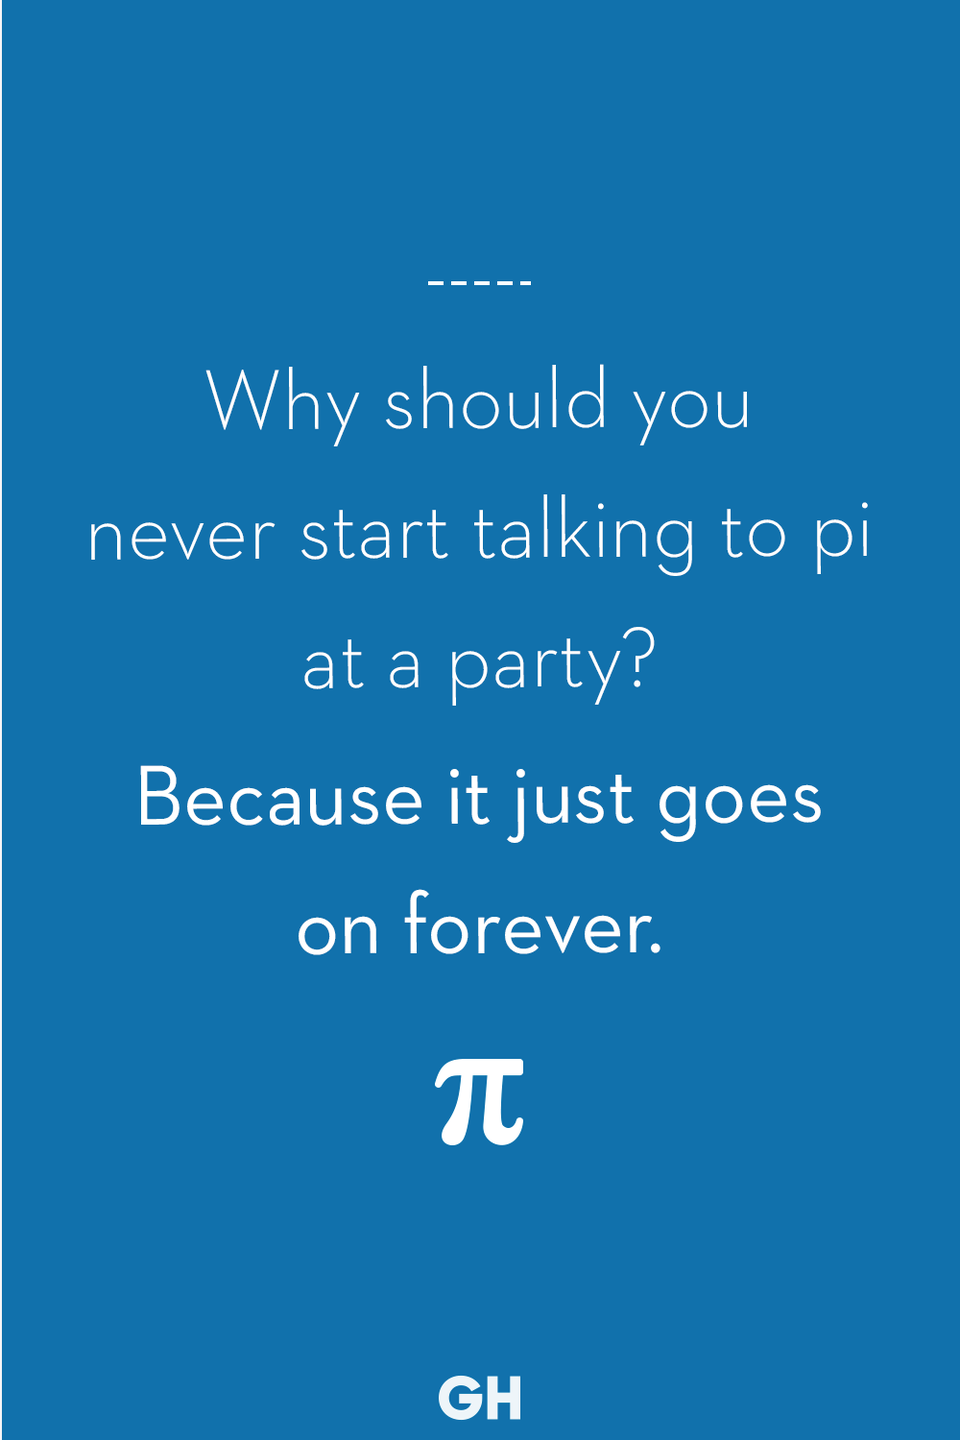 <p>Because it just goes on forever.</p>